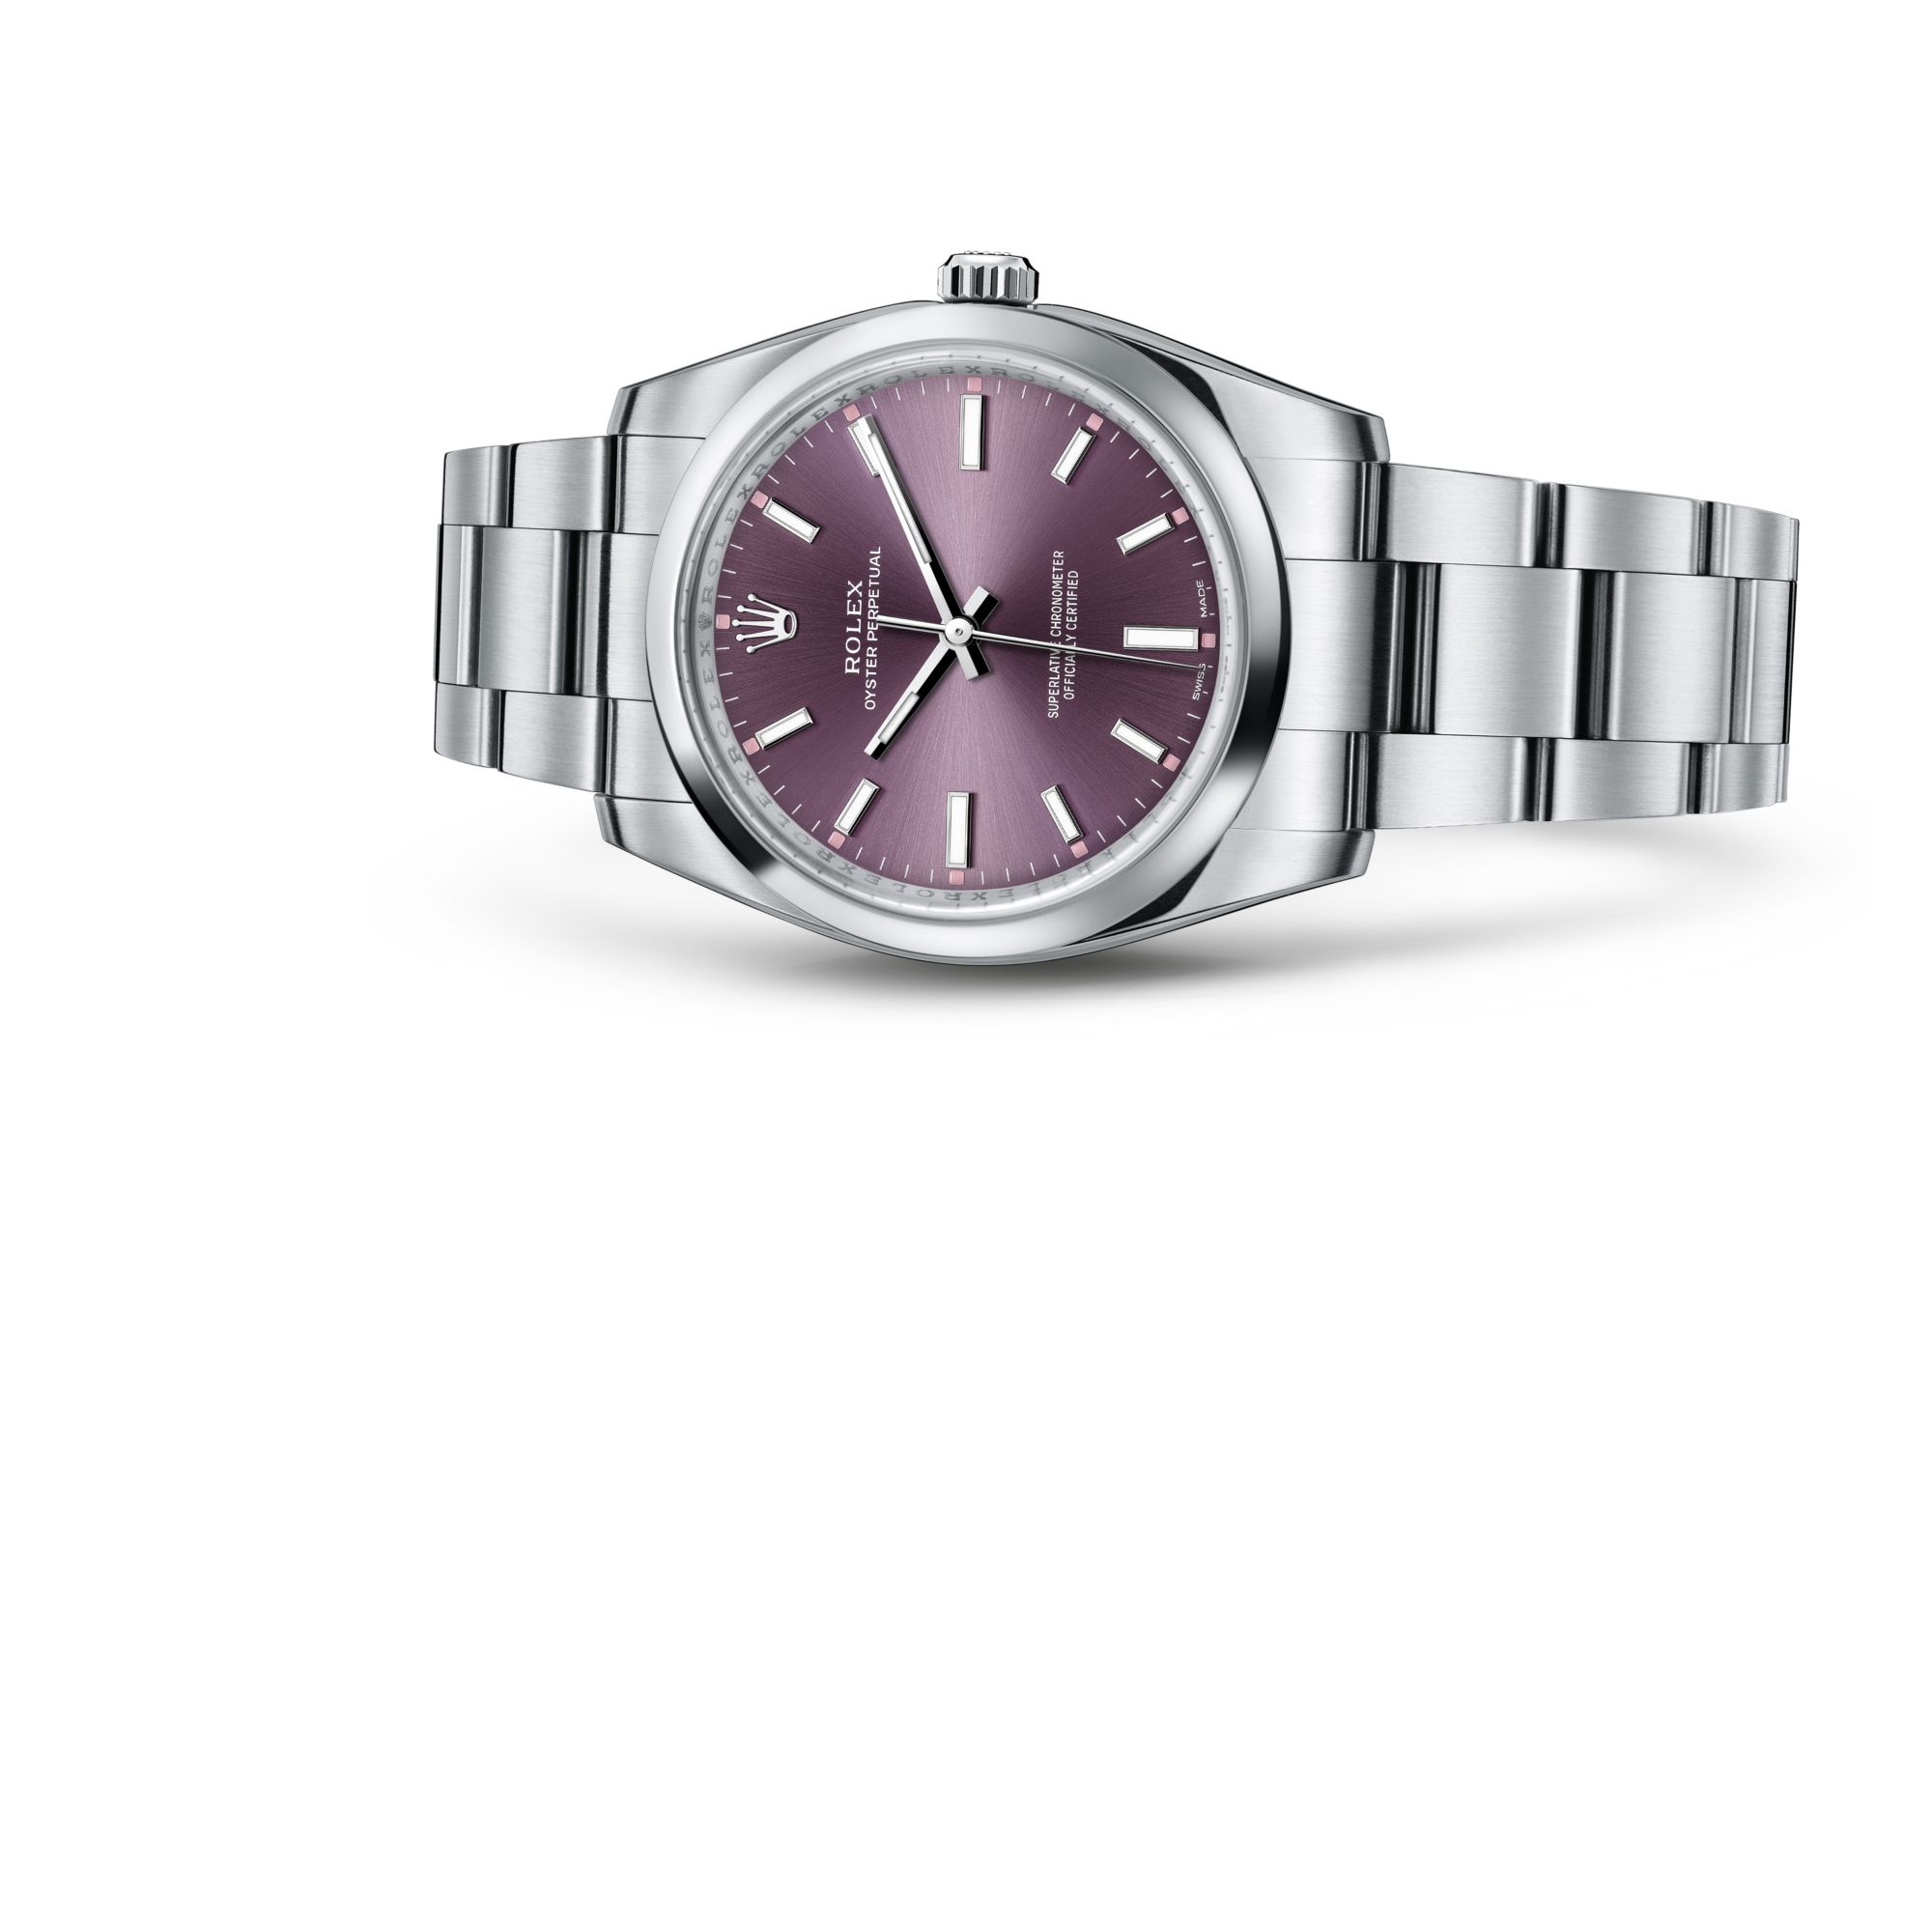 Rolex Oyster Perpetual 34 M114200-0020